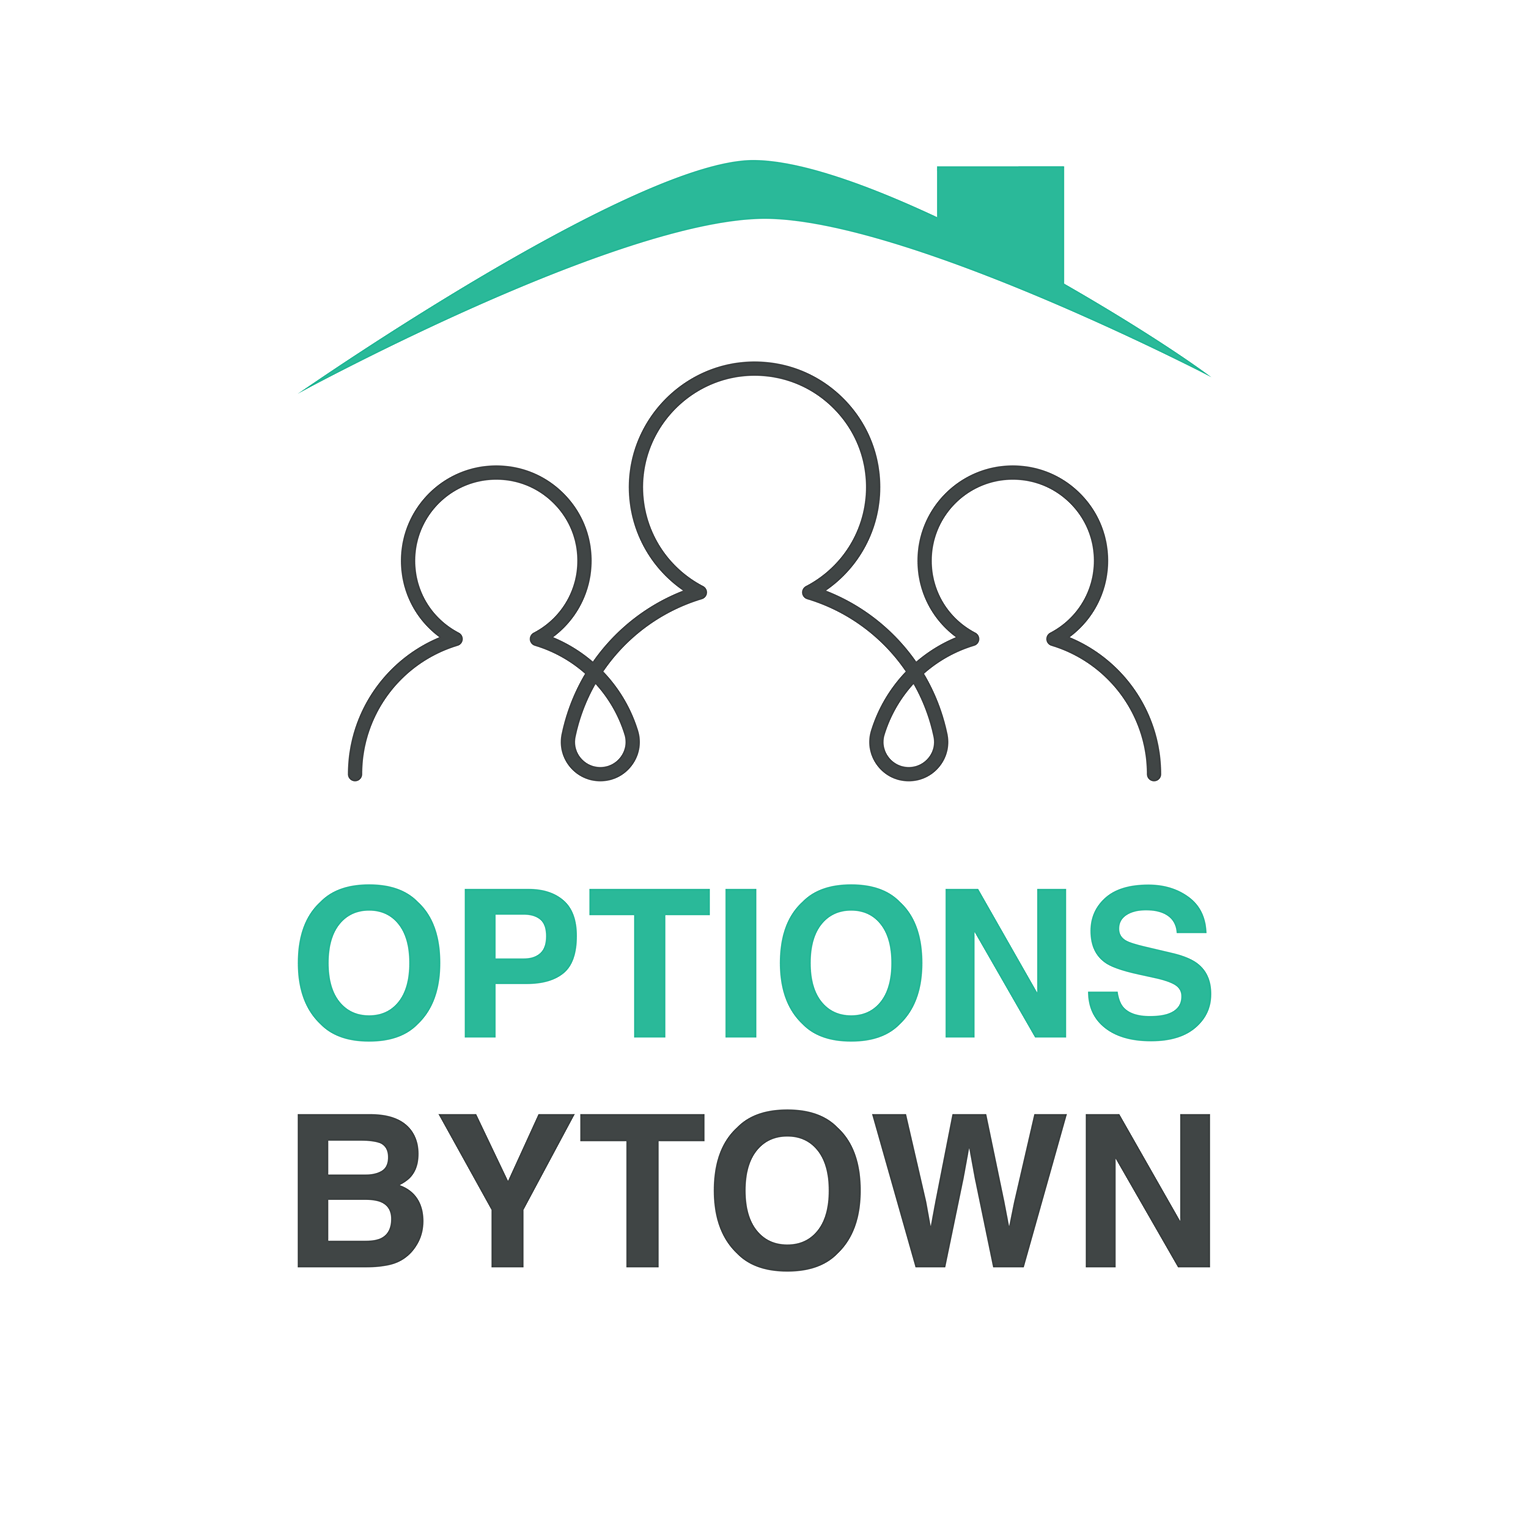 options_bytown_logo.png